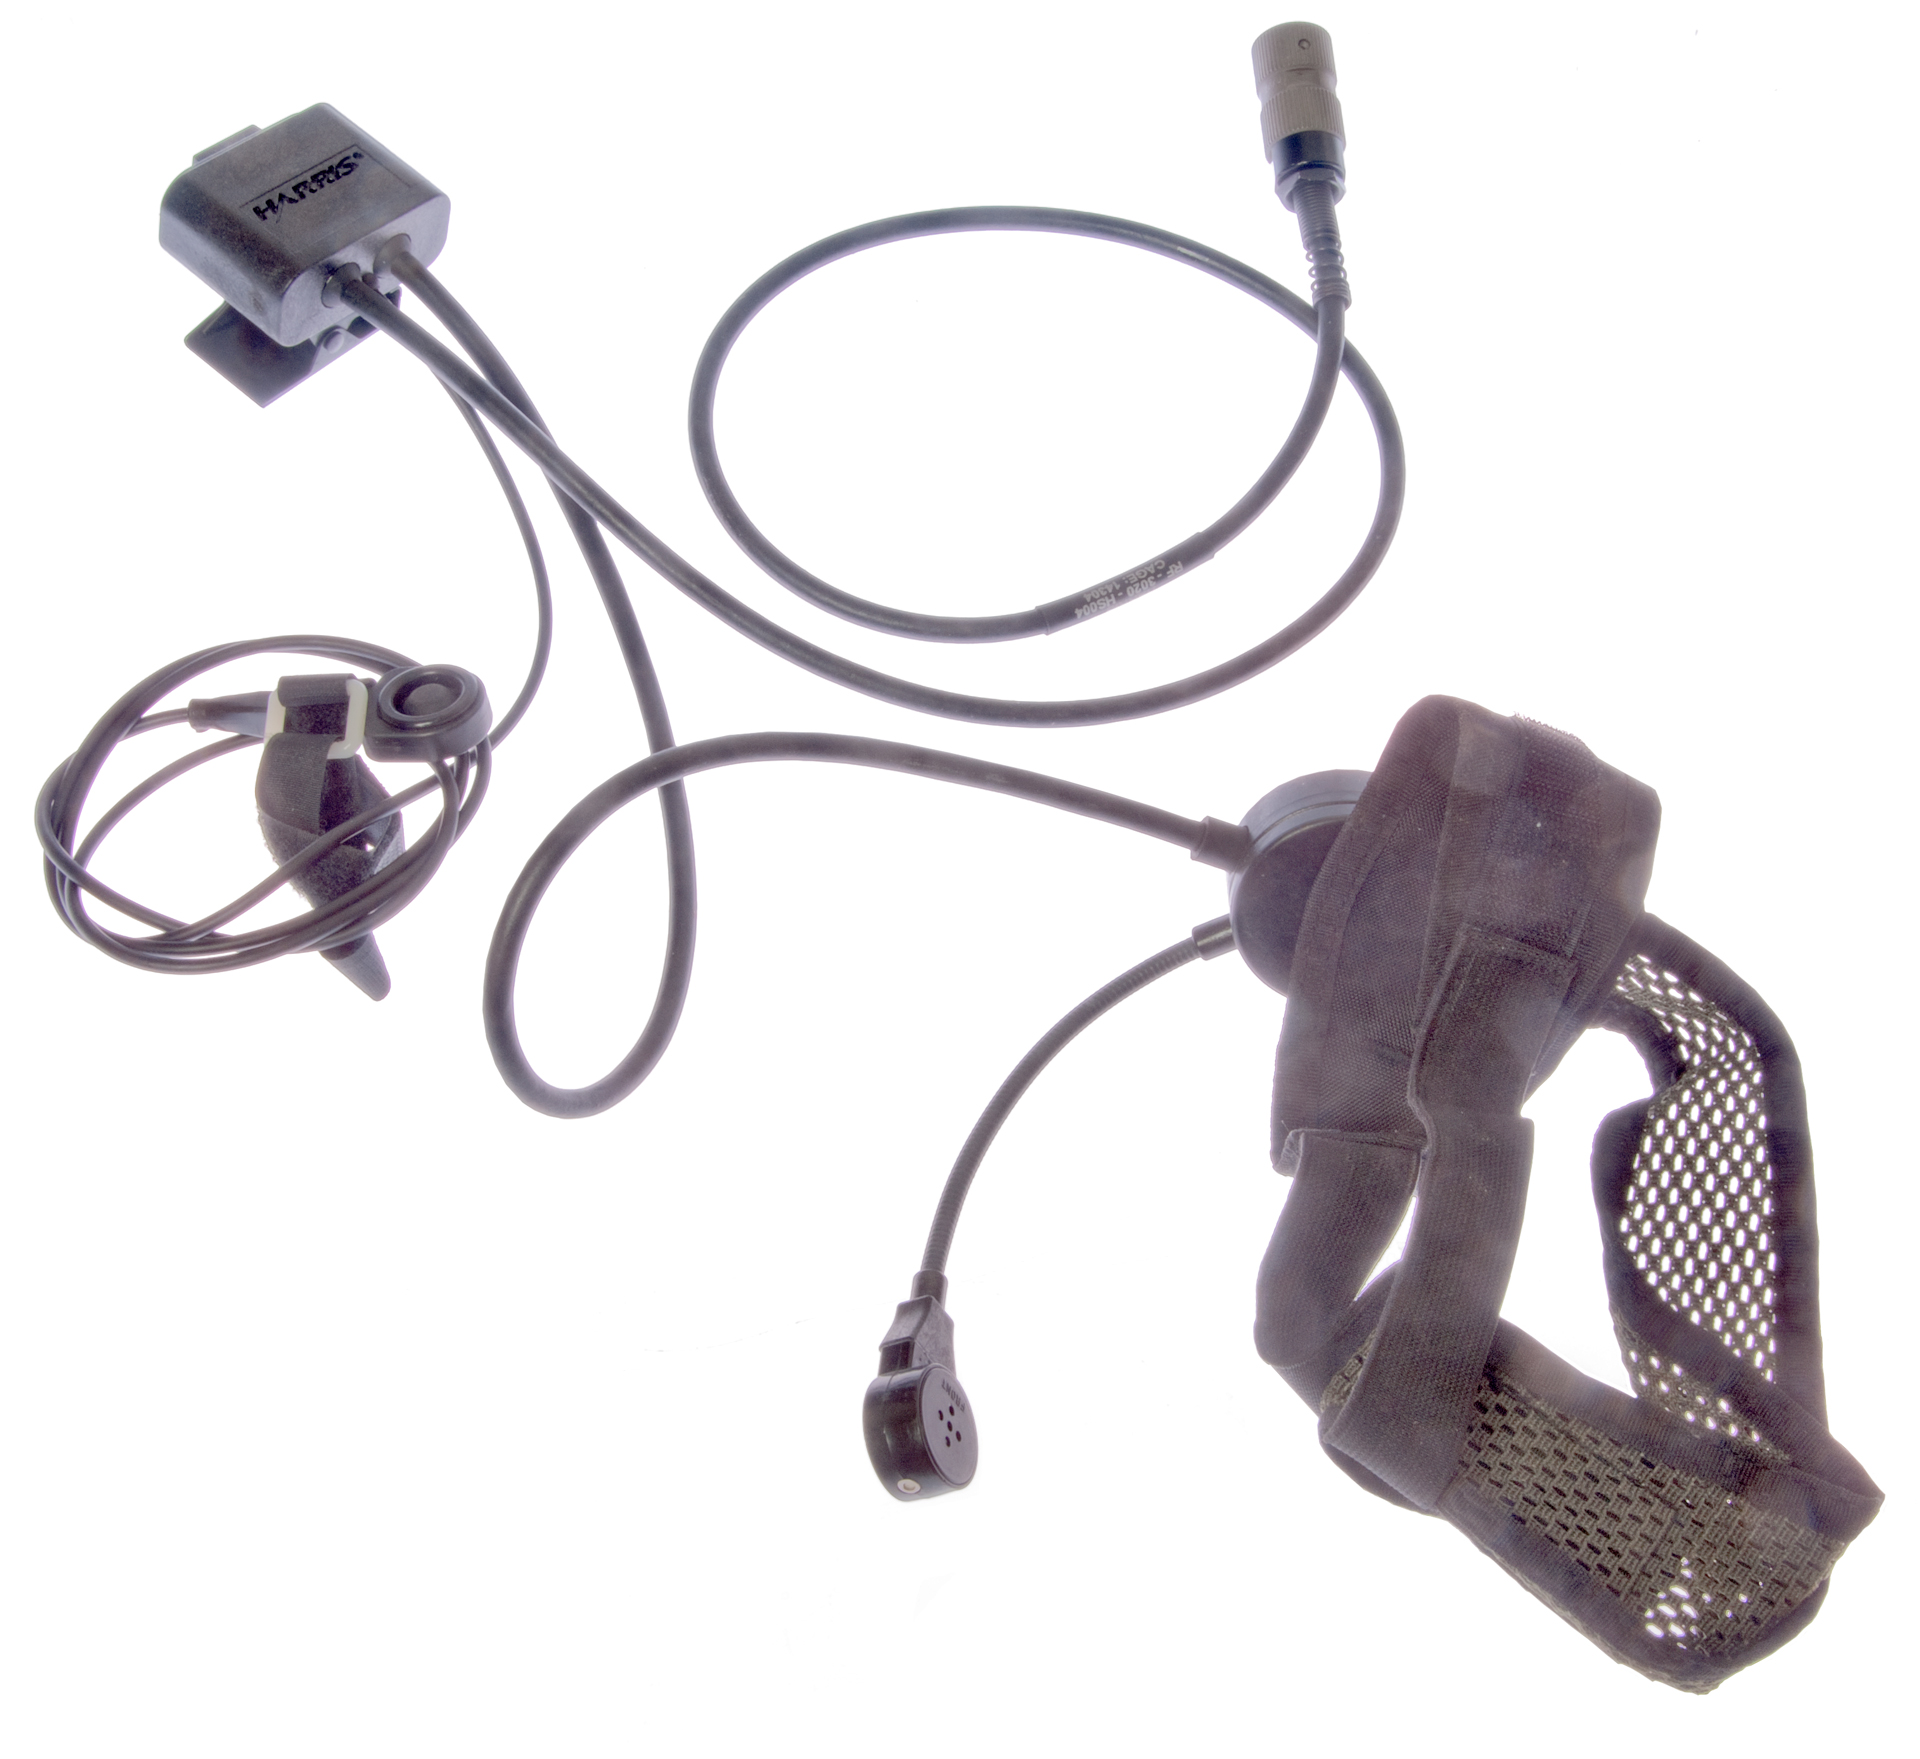 Military Audio Accessories Otto Headset Wiring Diagram Harris Rf 3020 Hs004 Remote Ptt